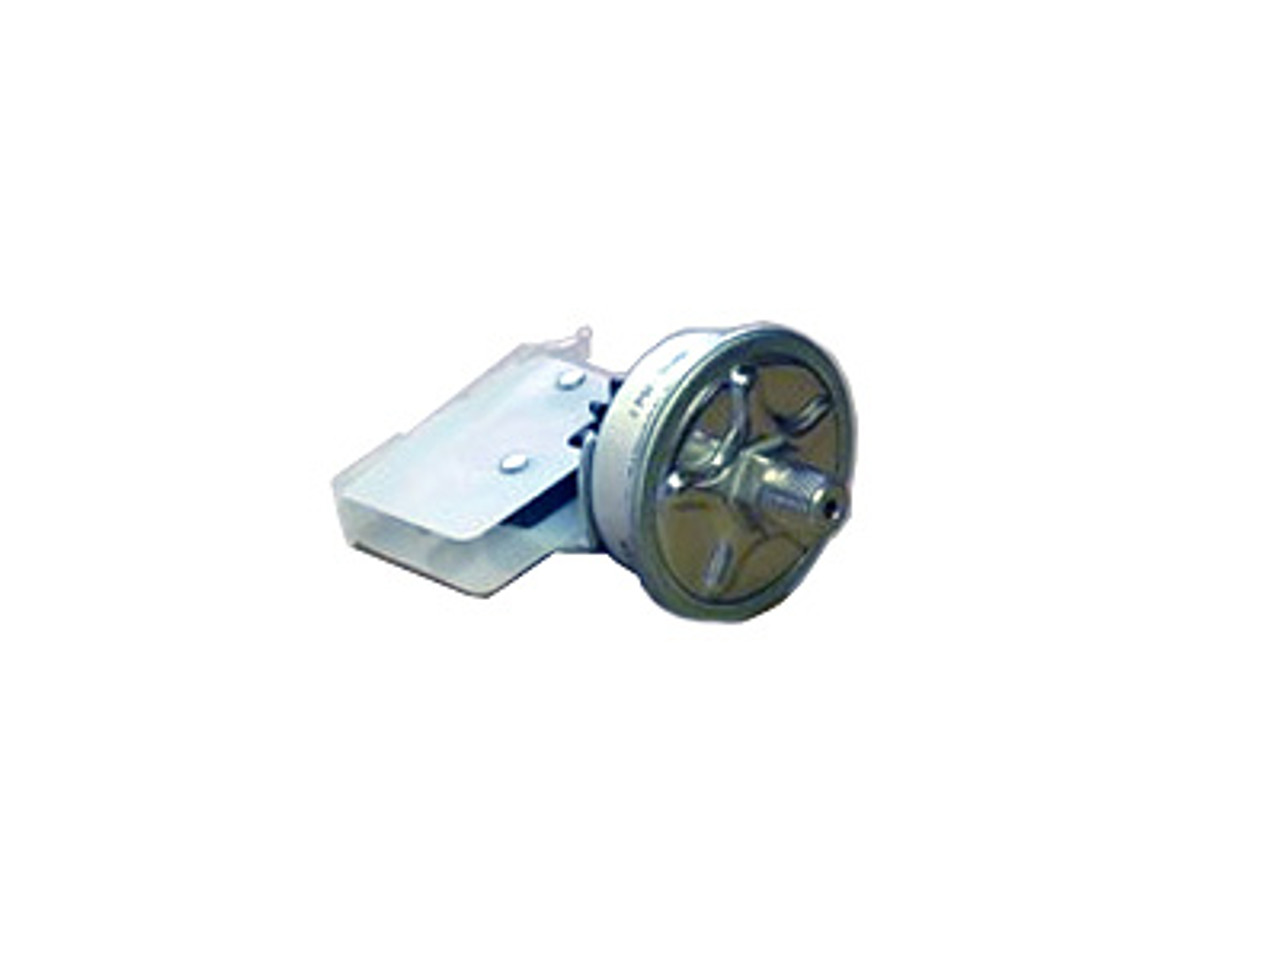 X802500 - Pressure Switch Assembly